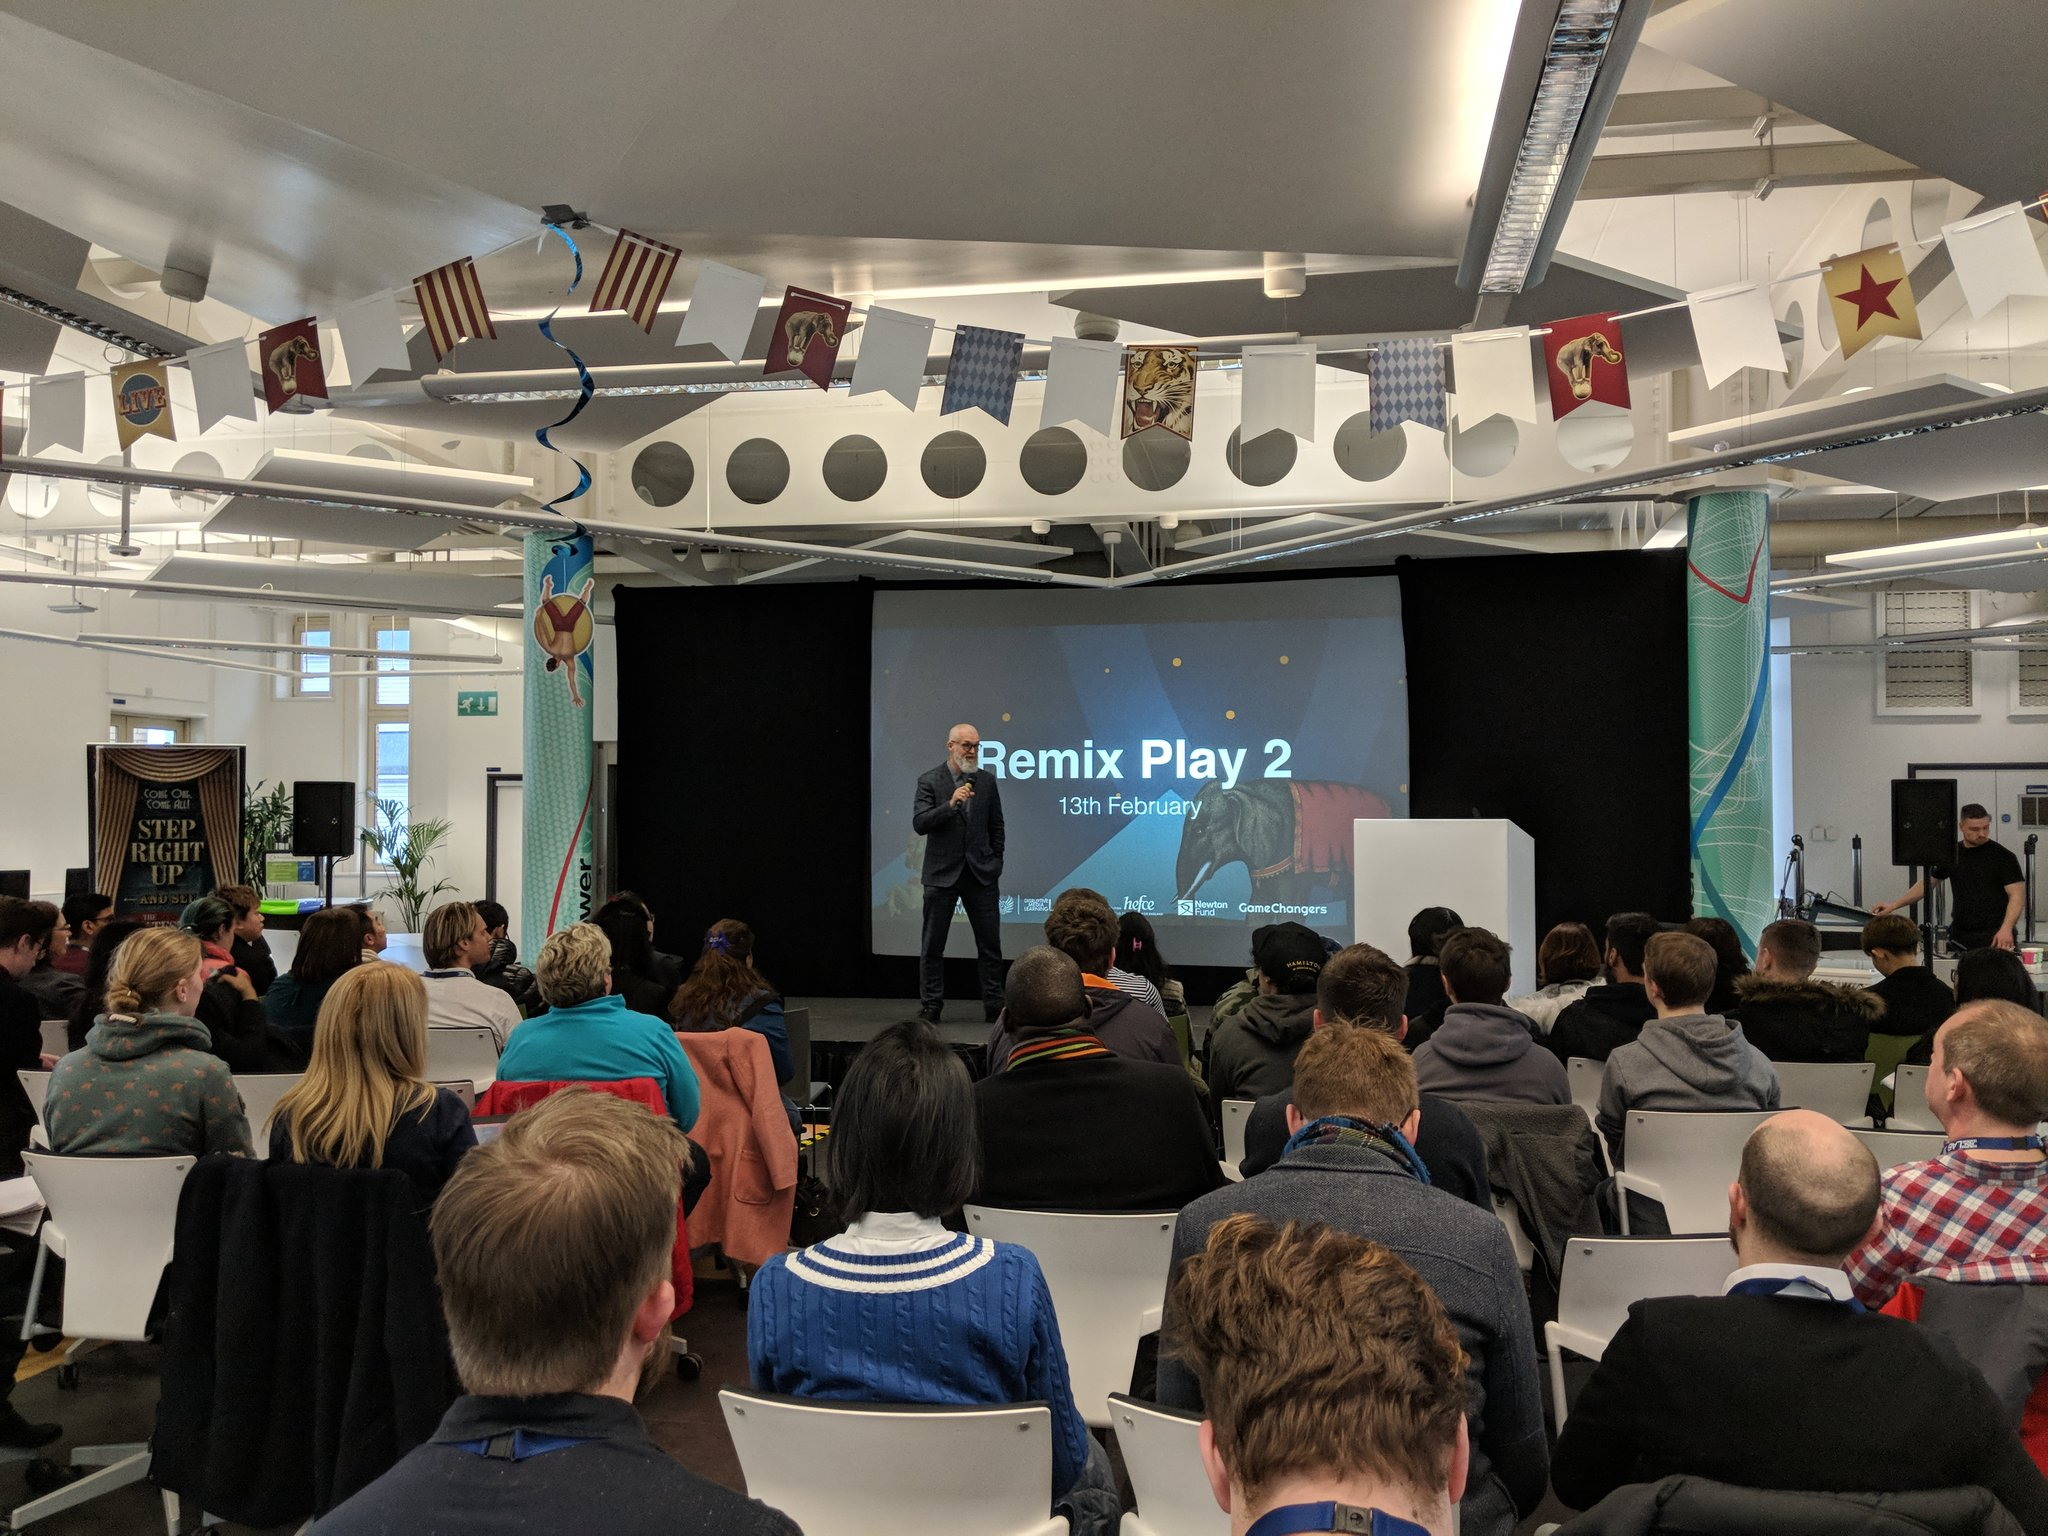 #RemixPlay2 is starting now https://t.co/WufkZo071j